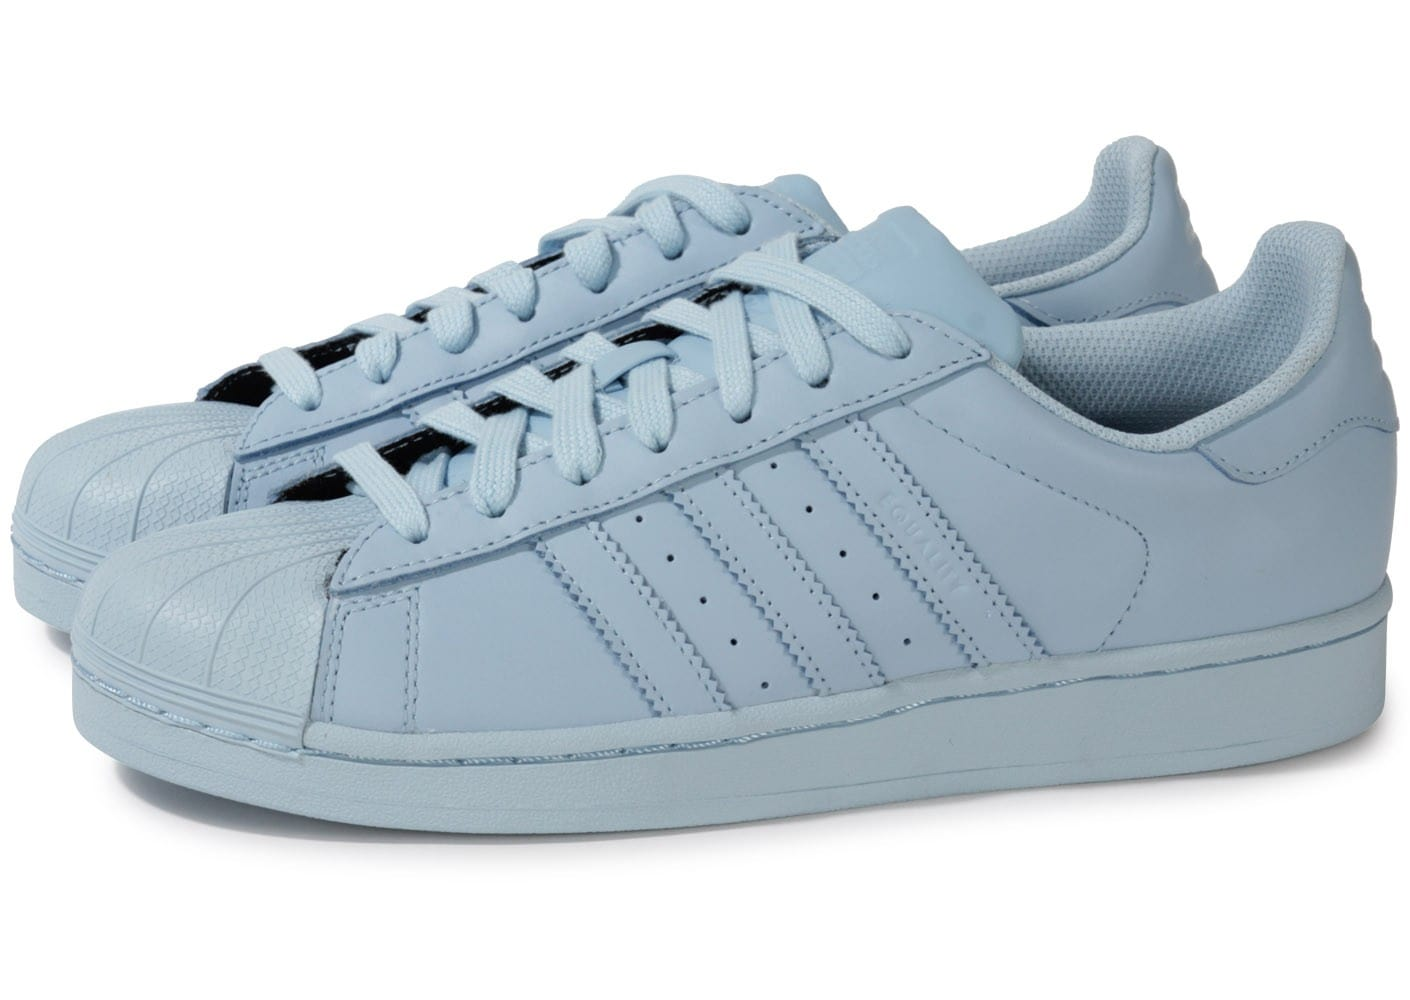 adidas Superstar Supercolor Bleu Ciel Chaussures Baskets homme